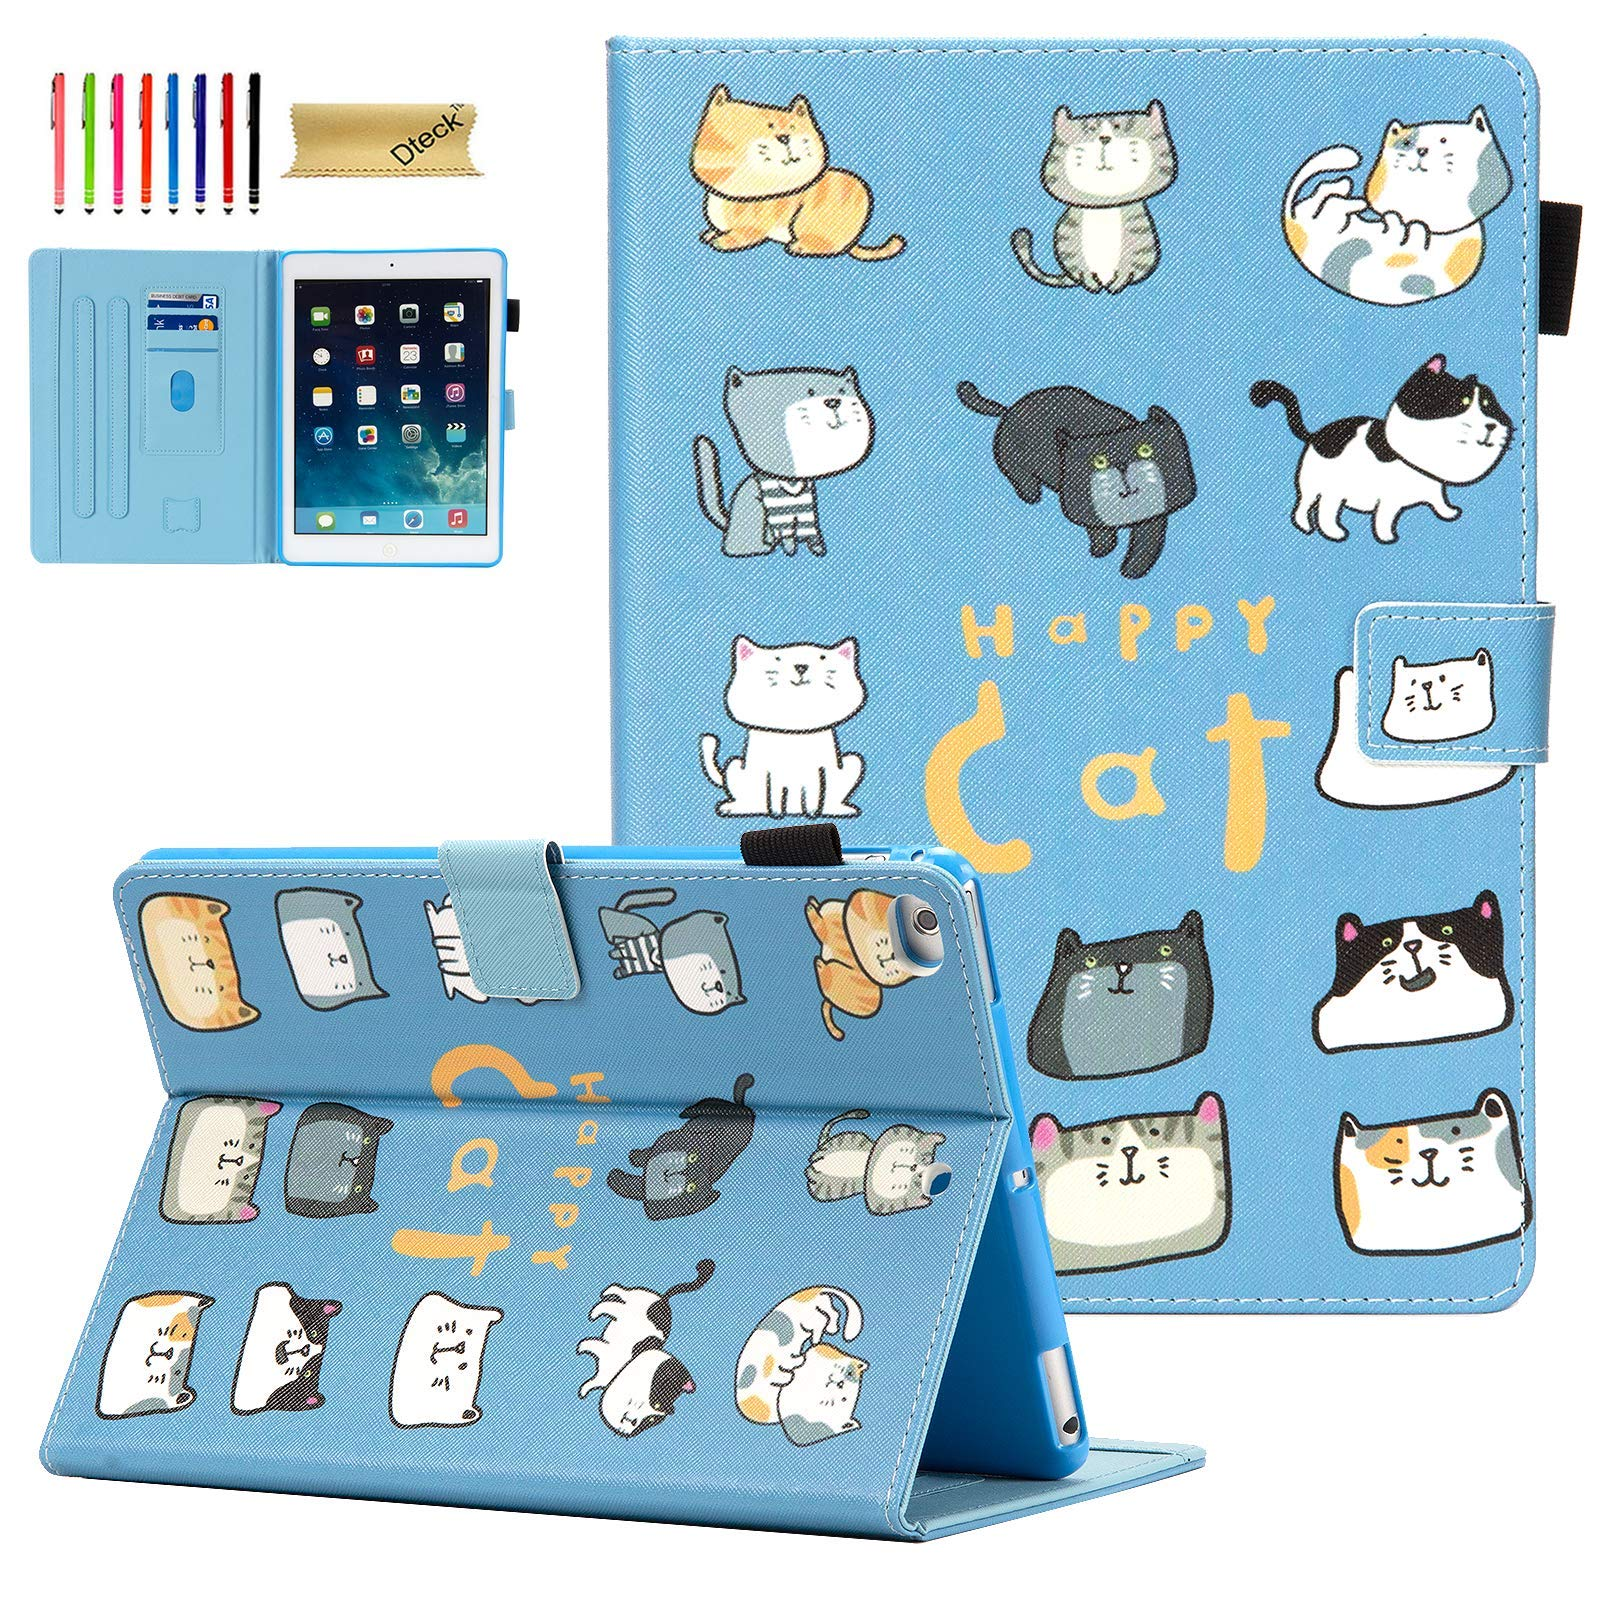 iPad Air 2 Case, iPad 6th Generation Cases, iPad Case 9.7 2018/2017 with Pencil Holder, Dteck Folio Leather Stand Case with Soft Silicone Back Cover for iPad Air/iPad 9.7 inch Tablet, Cartoon Cats